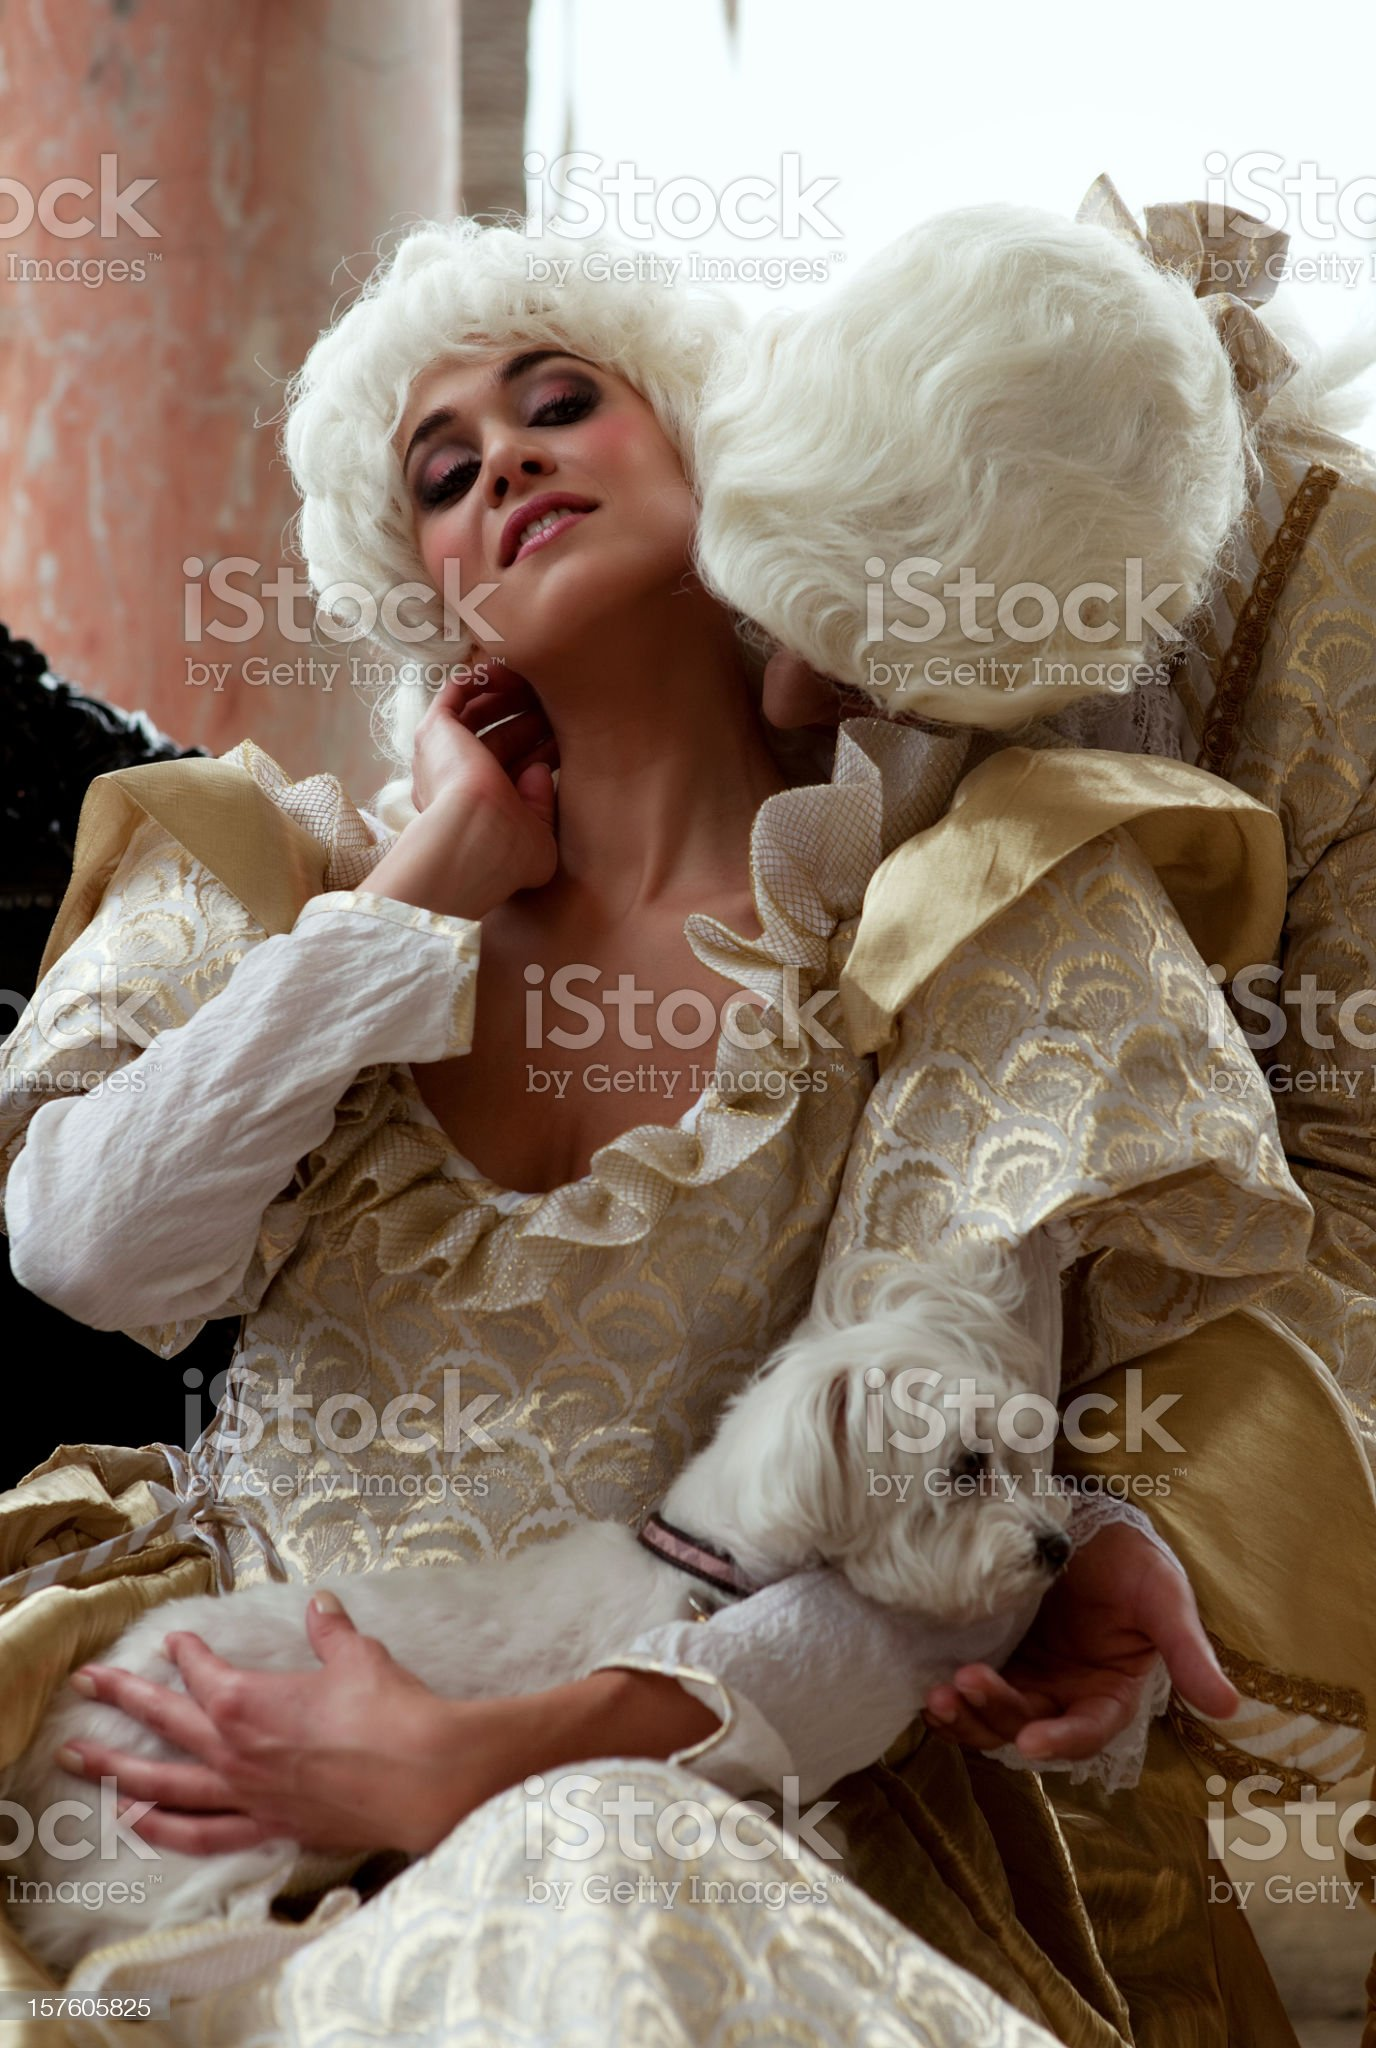 French royals royalty-free stock photo